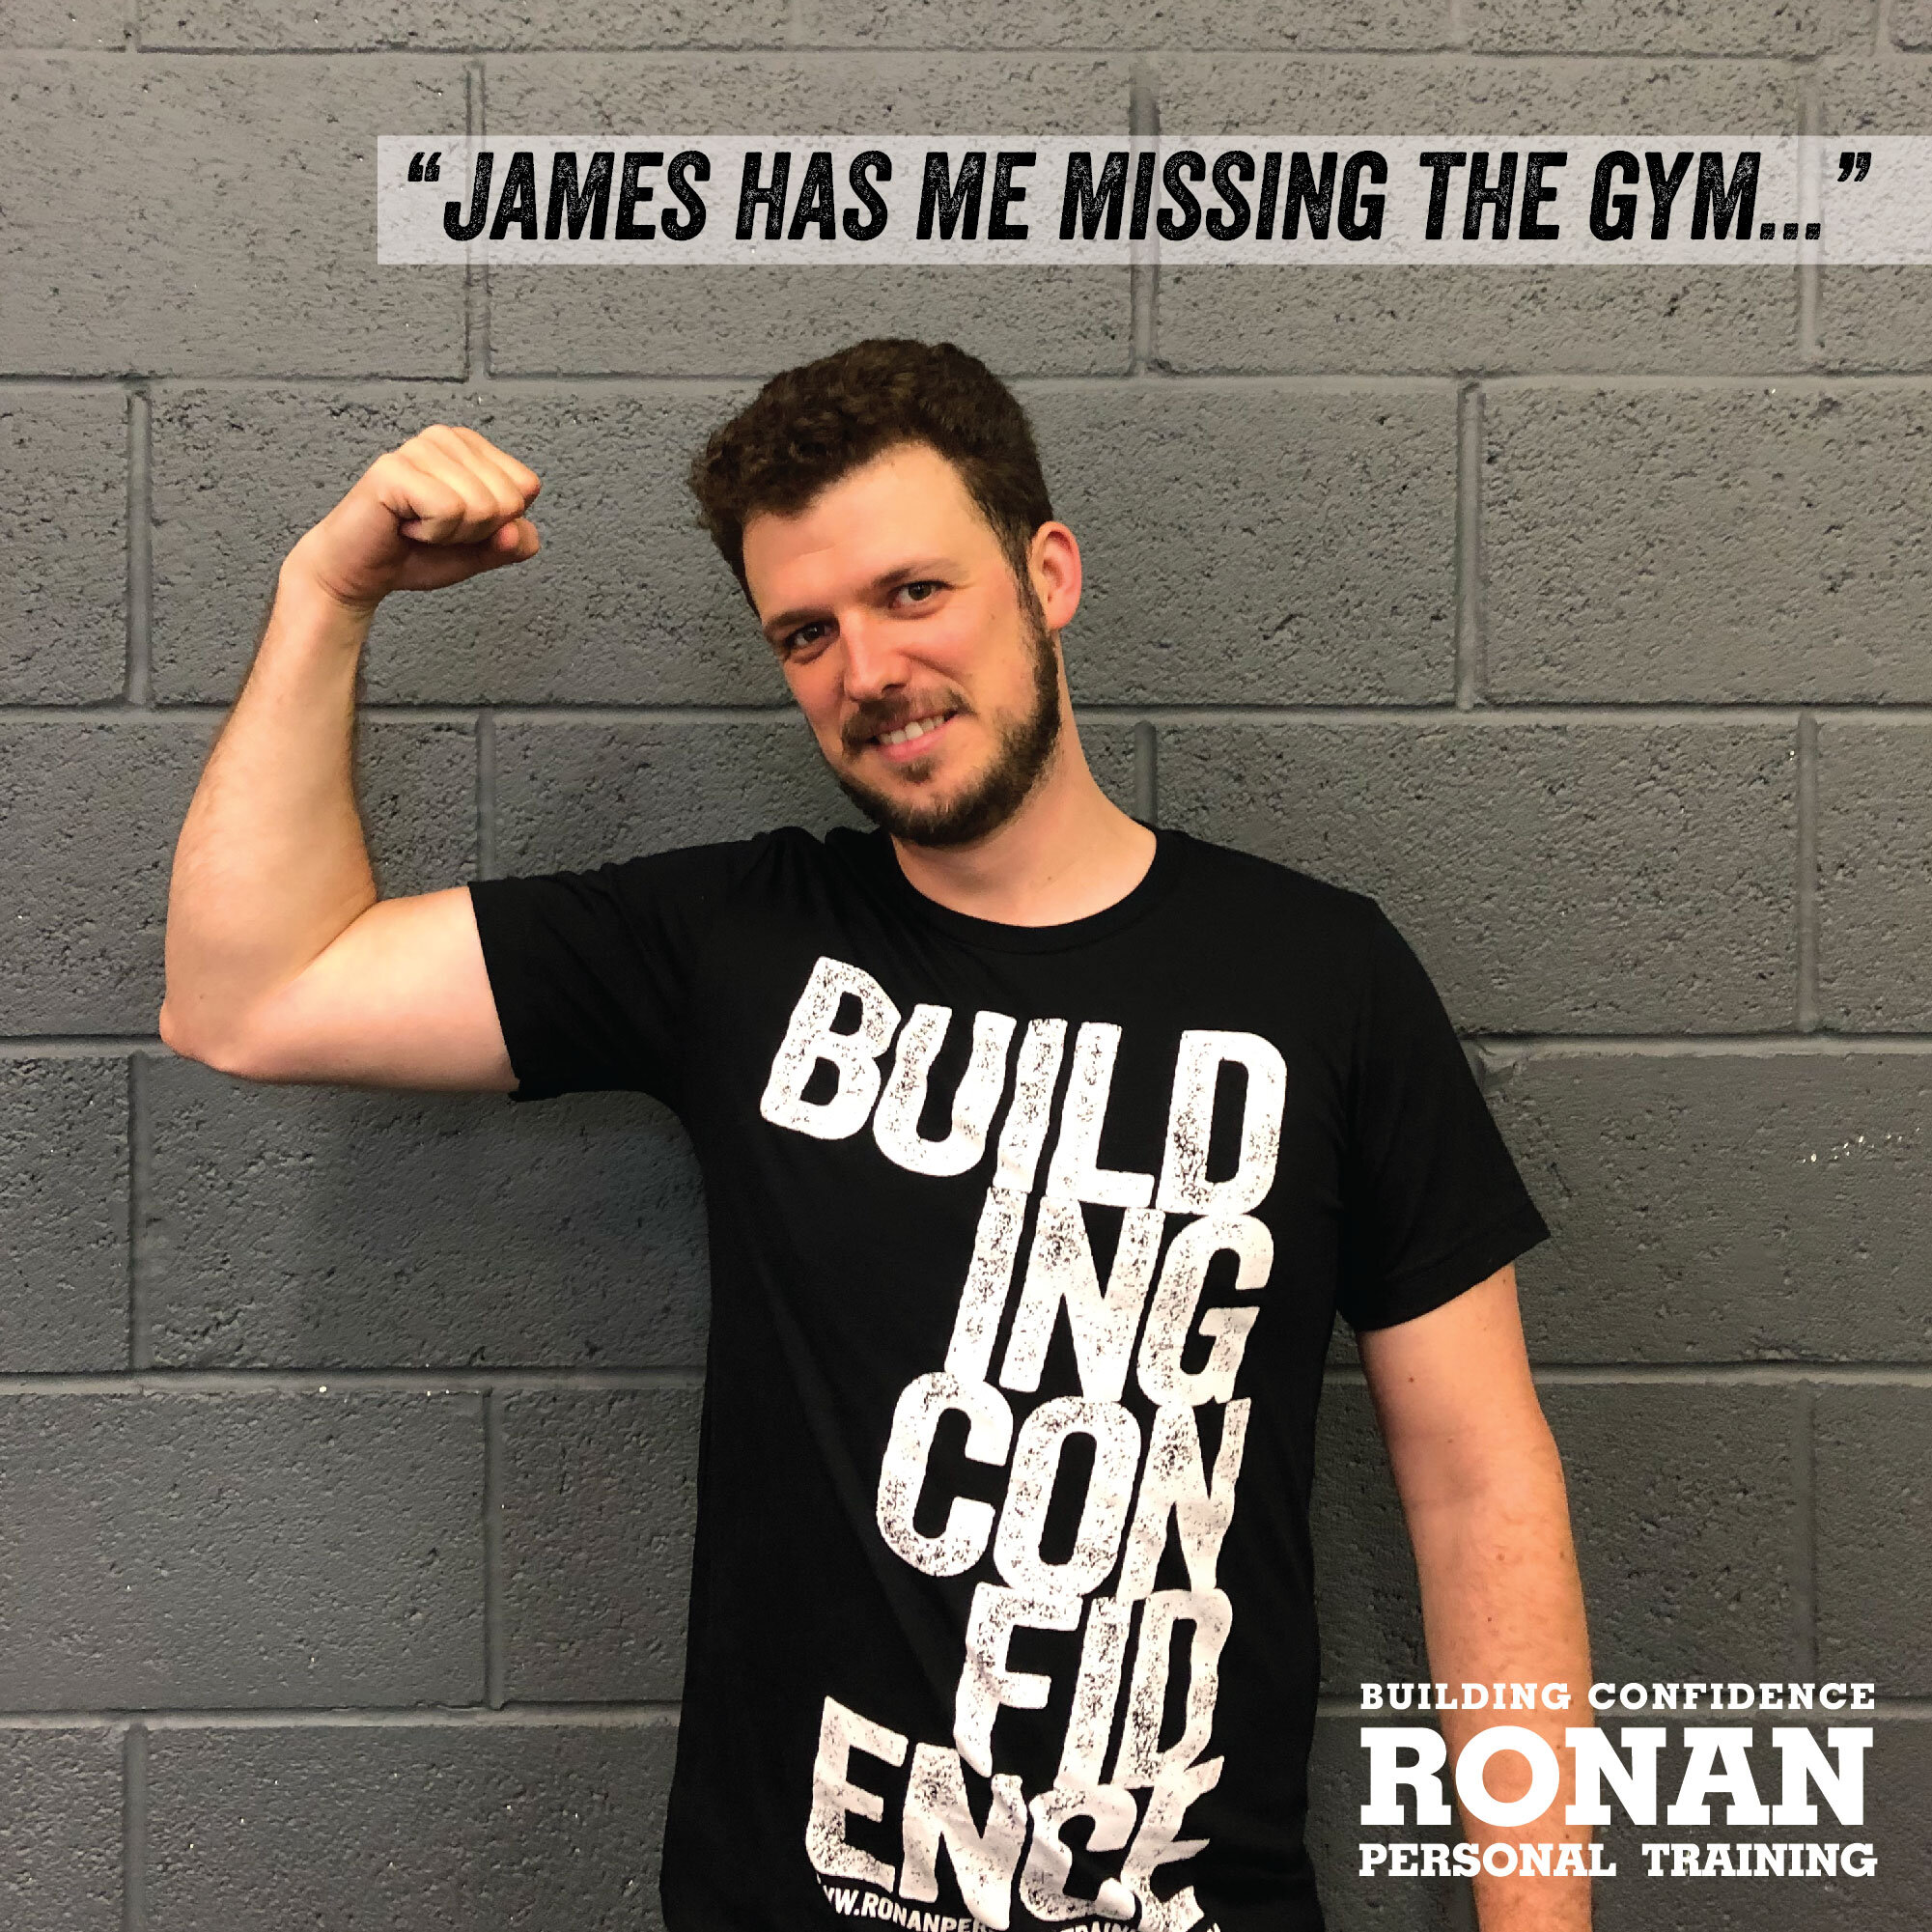 """He has managed to sort out neck pain that I've had for years in a few short months"" - ""James has me missing the gym when travel gets in the way of regular attendance, and 'missing the gym' is not something I would have though possible a short time ago.He has managed to sort out neck pain that I've had for years in a few short months, had me improving my eating habits and, of course, increasing fitness. He translates his pretty extensive knowledge into straightforward, practical advice that leads to results.Extraordinarily flexible to design programs and sessions around you - cannot recommend highly enough. And if you ask him nicely enough, he may even throw in a free, high quality t-shirt."" - Daniel Zimmer, July 2019"